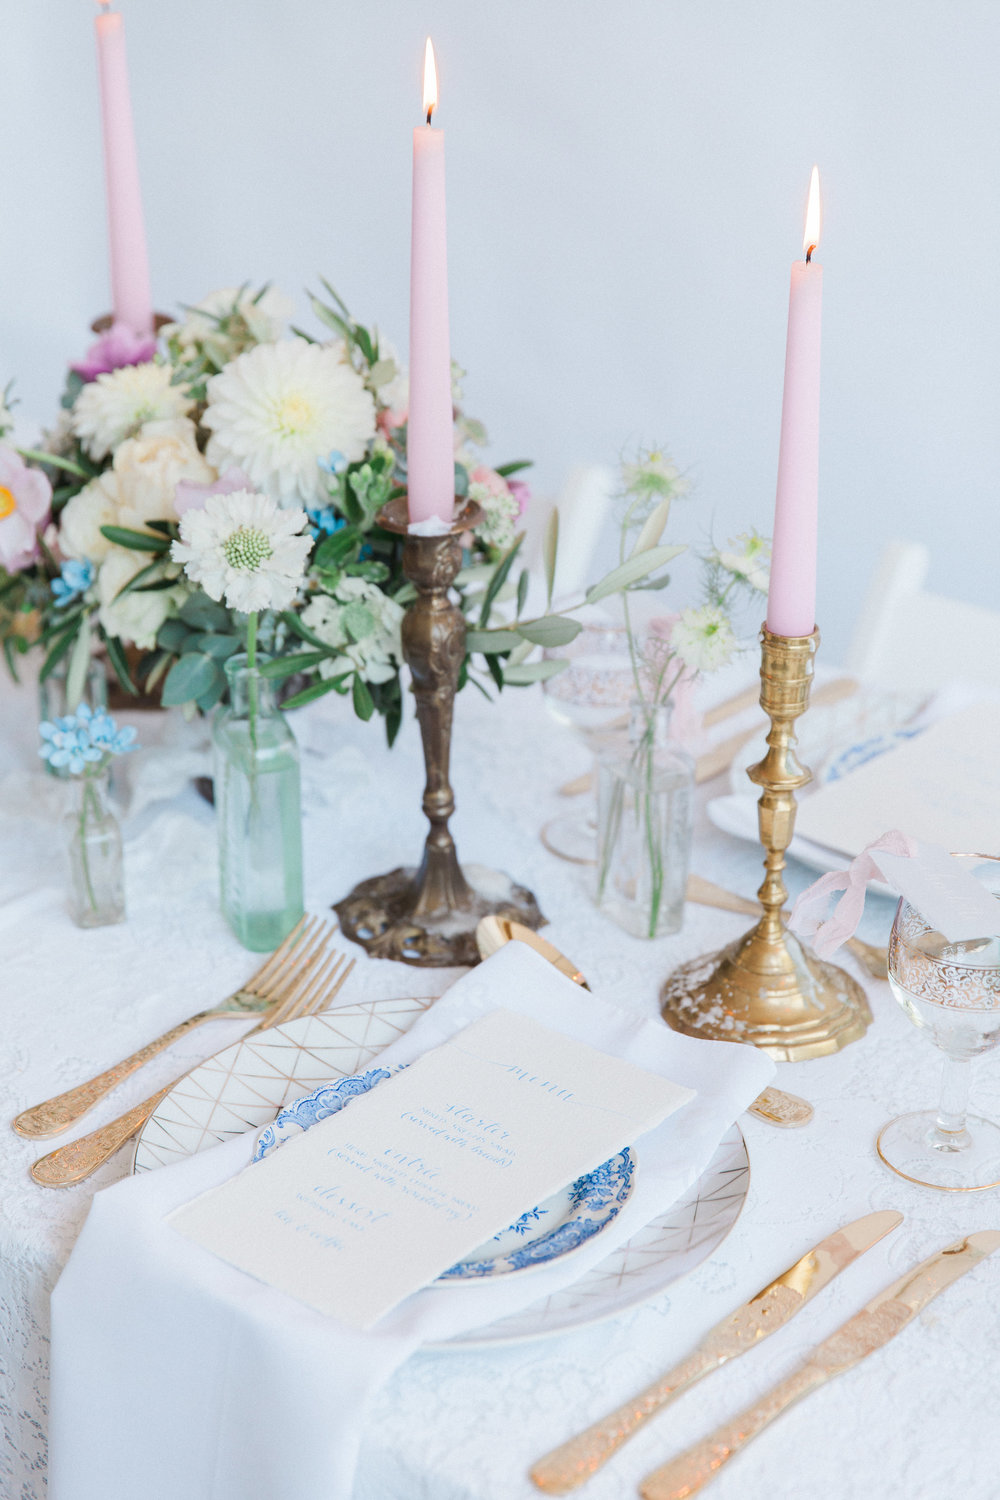 Vintage Amy Wedding Styling-Vintage Luxe Wedding Place Setting-London Wedding Stylist